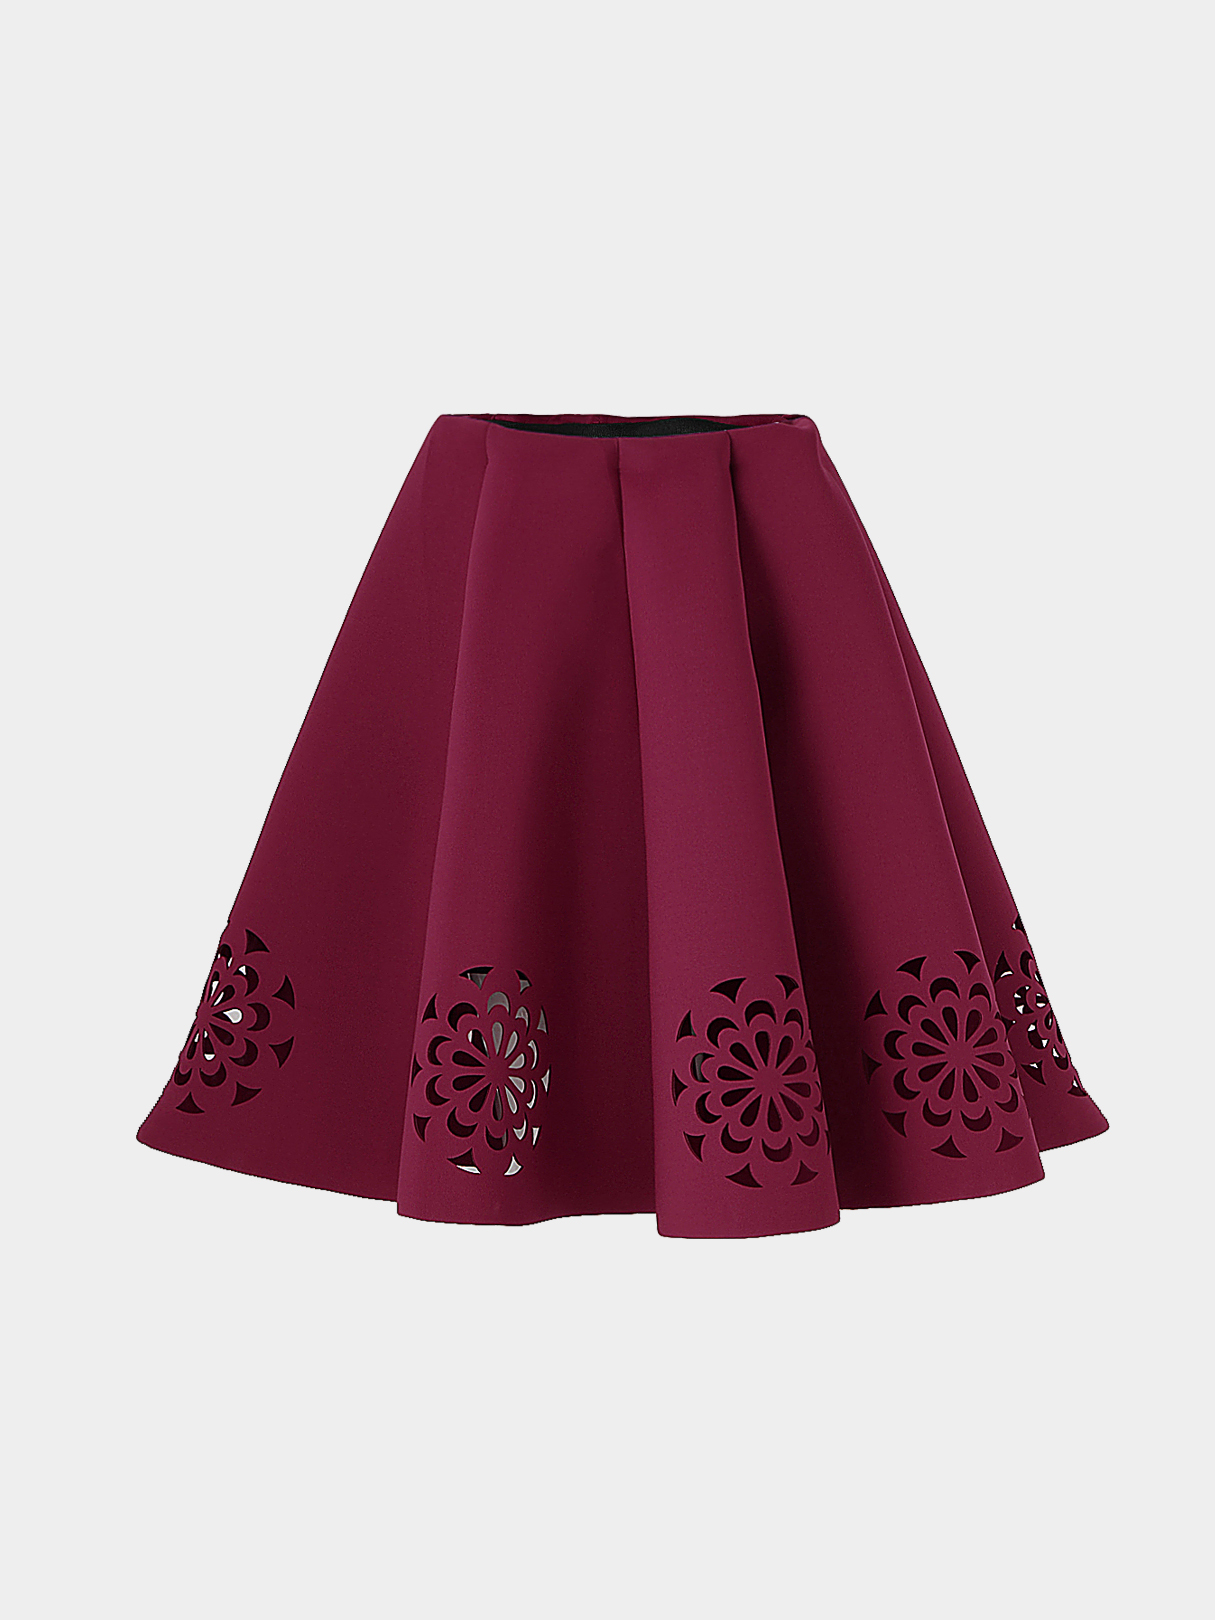 Burgundy Midi Full Skirt With Cut Flowers Hem накладная раковина cersanit easy es60 белый